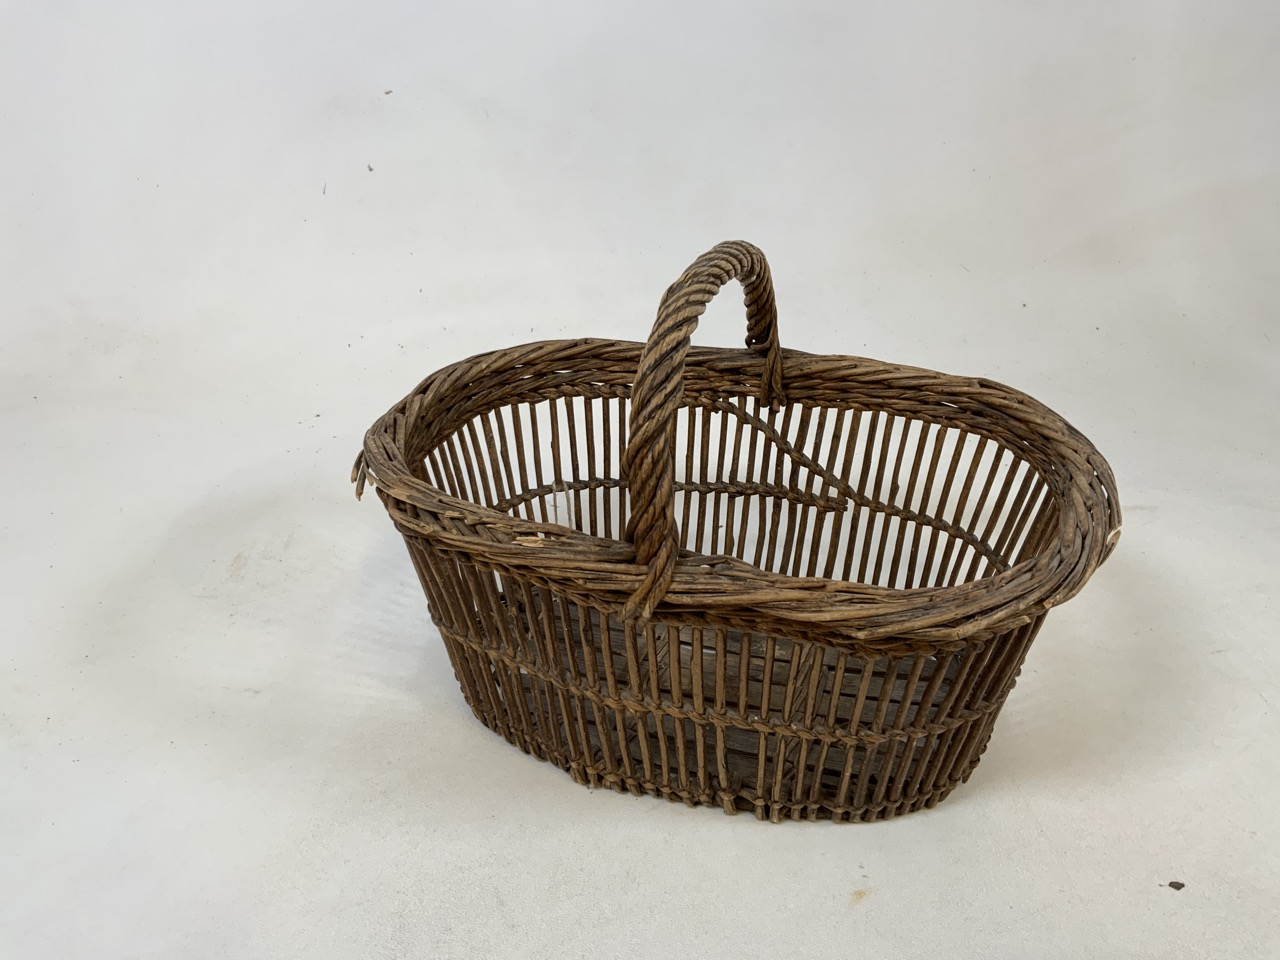 Two vintage french baskets together with a wooden sieve .Sieve W: 27cm x H: 13cm. - Image 3 of 4